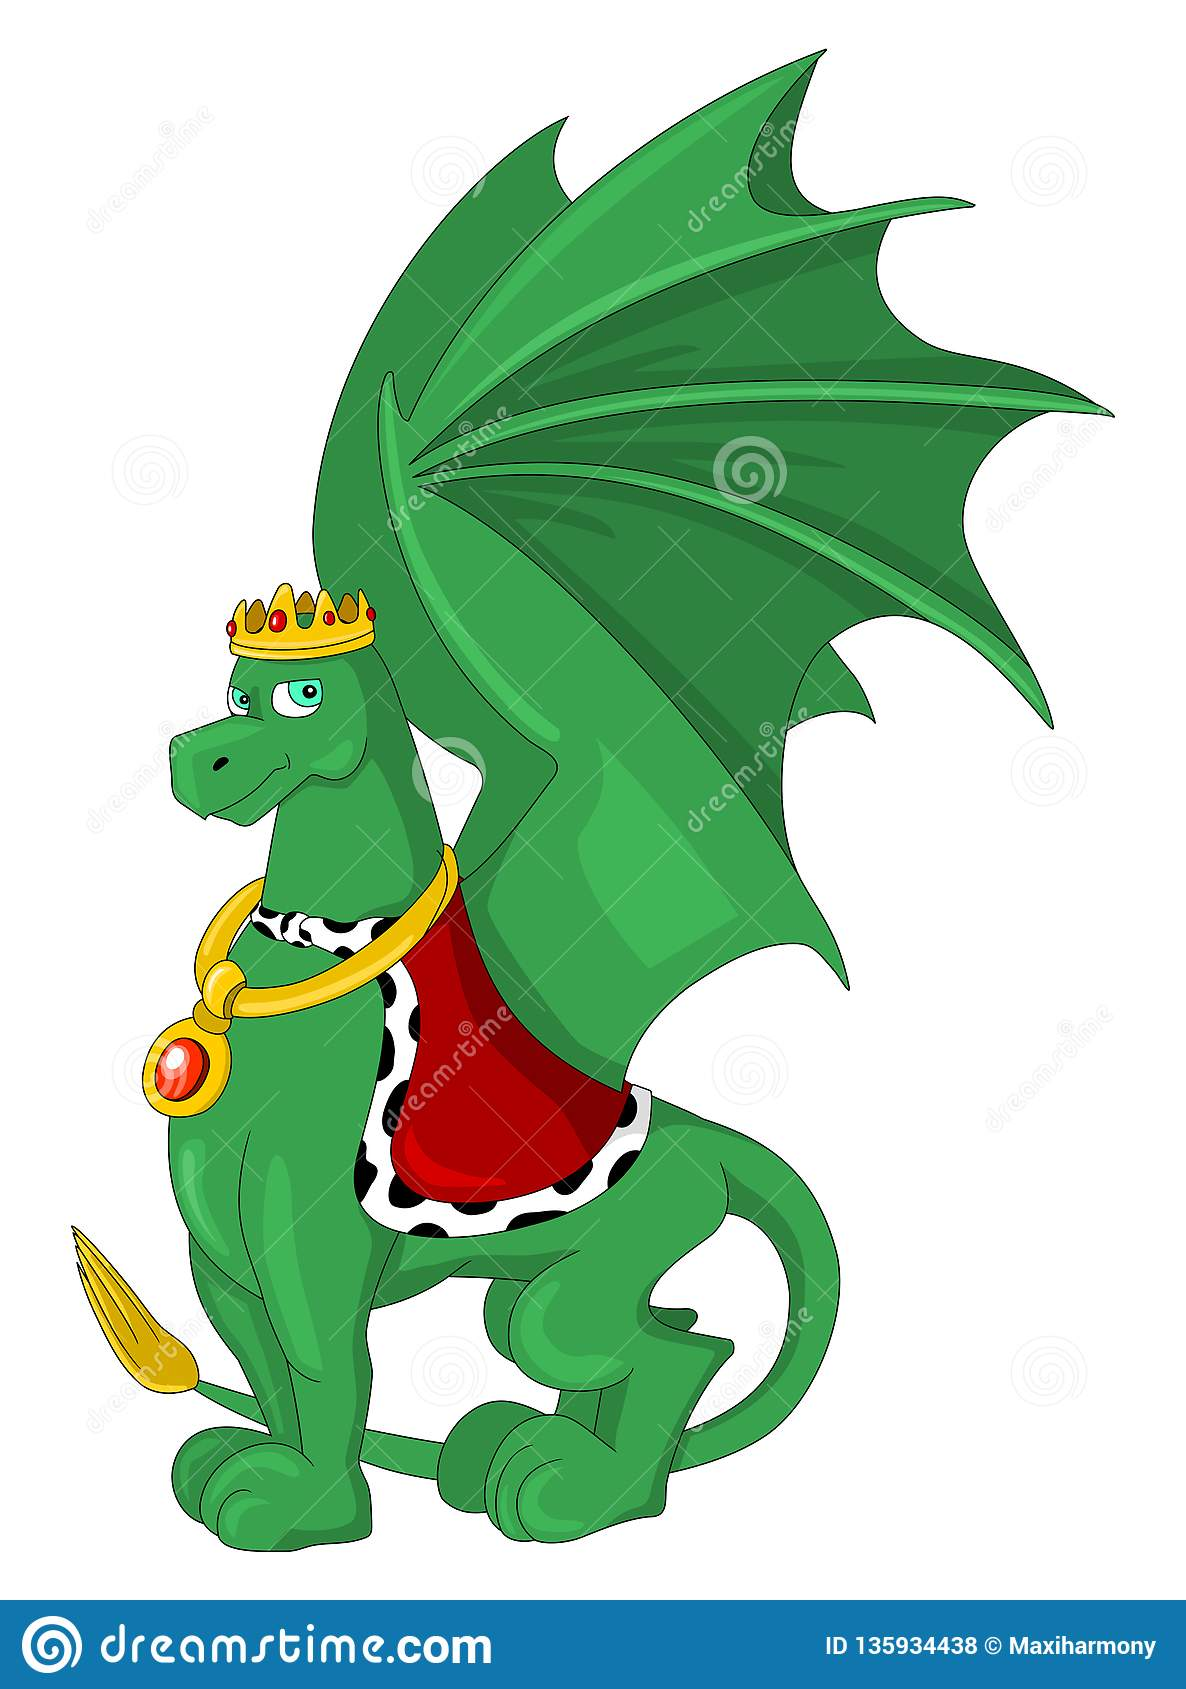 Cartoon of a green royal dragon